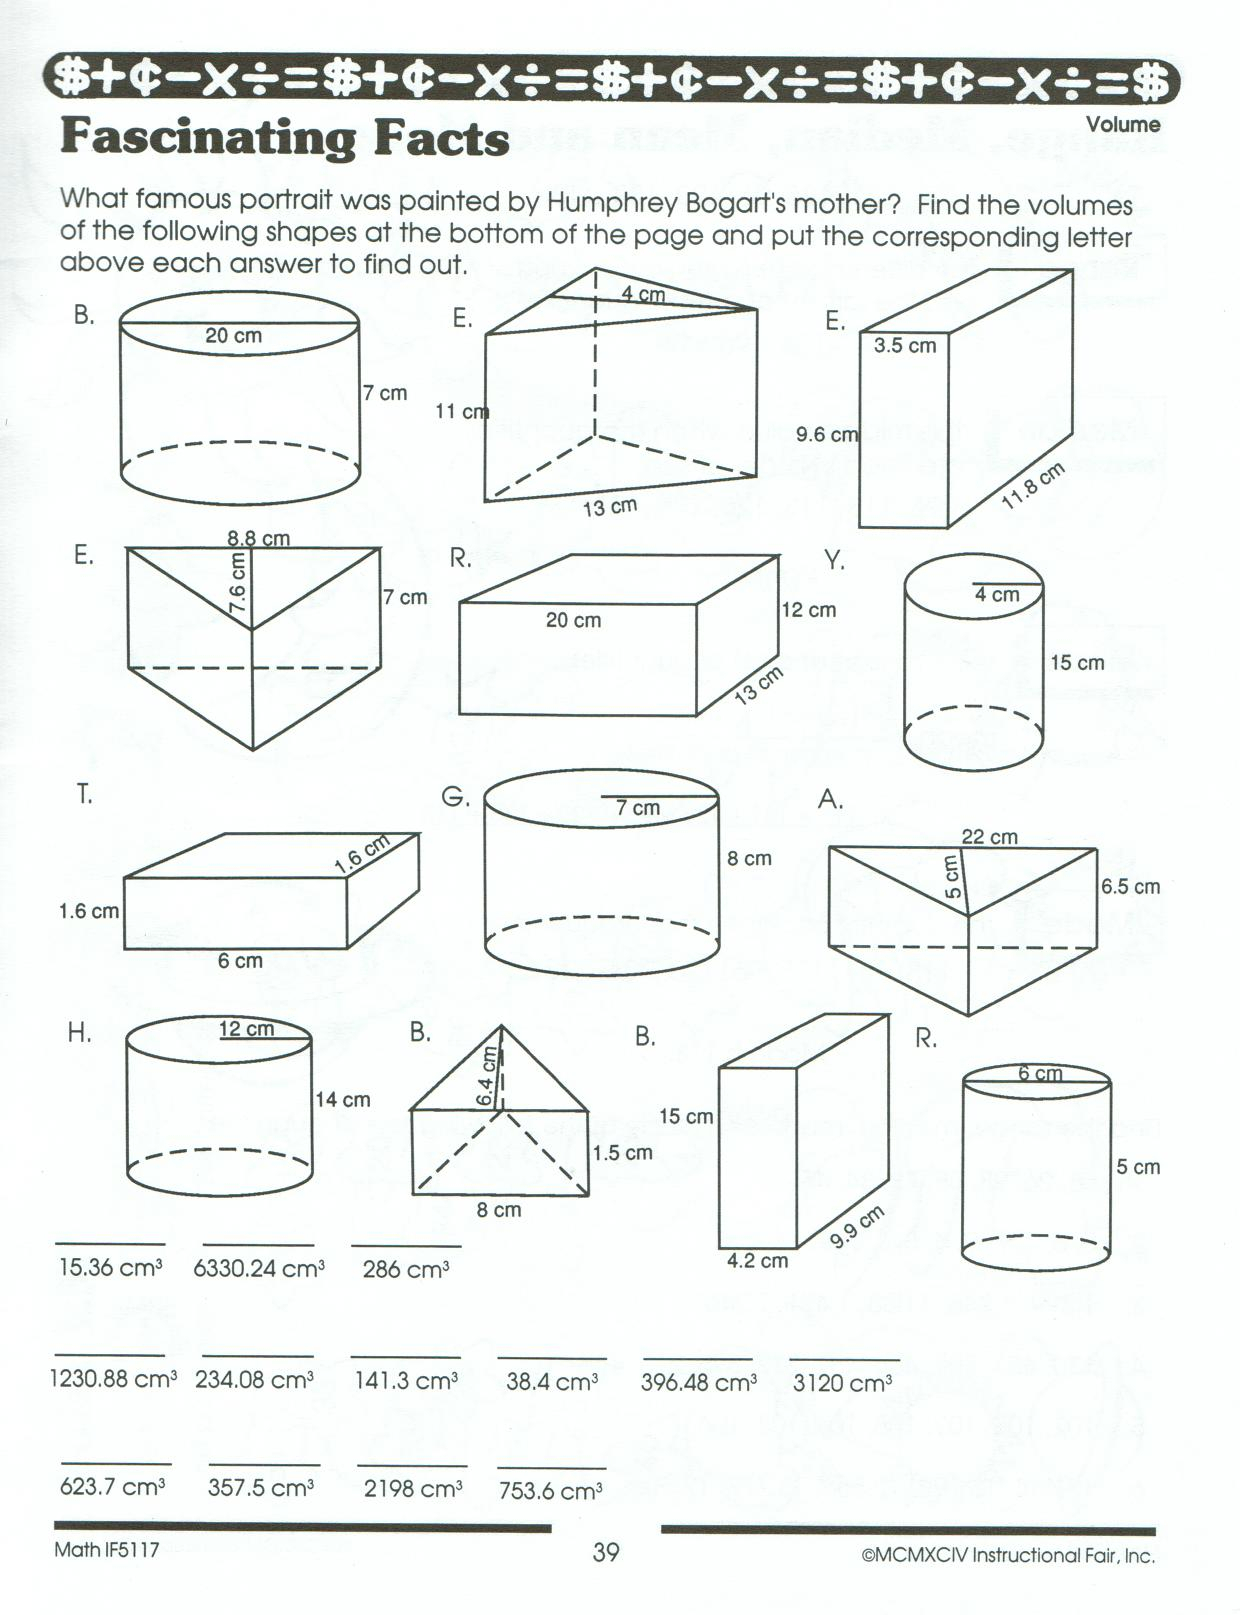 Volume And Surface Area Math Worksheets The Best Image 8th